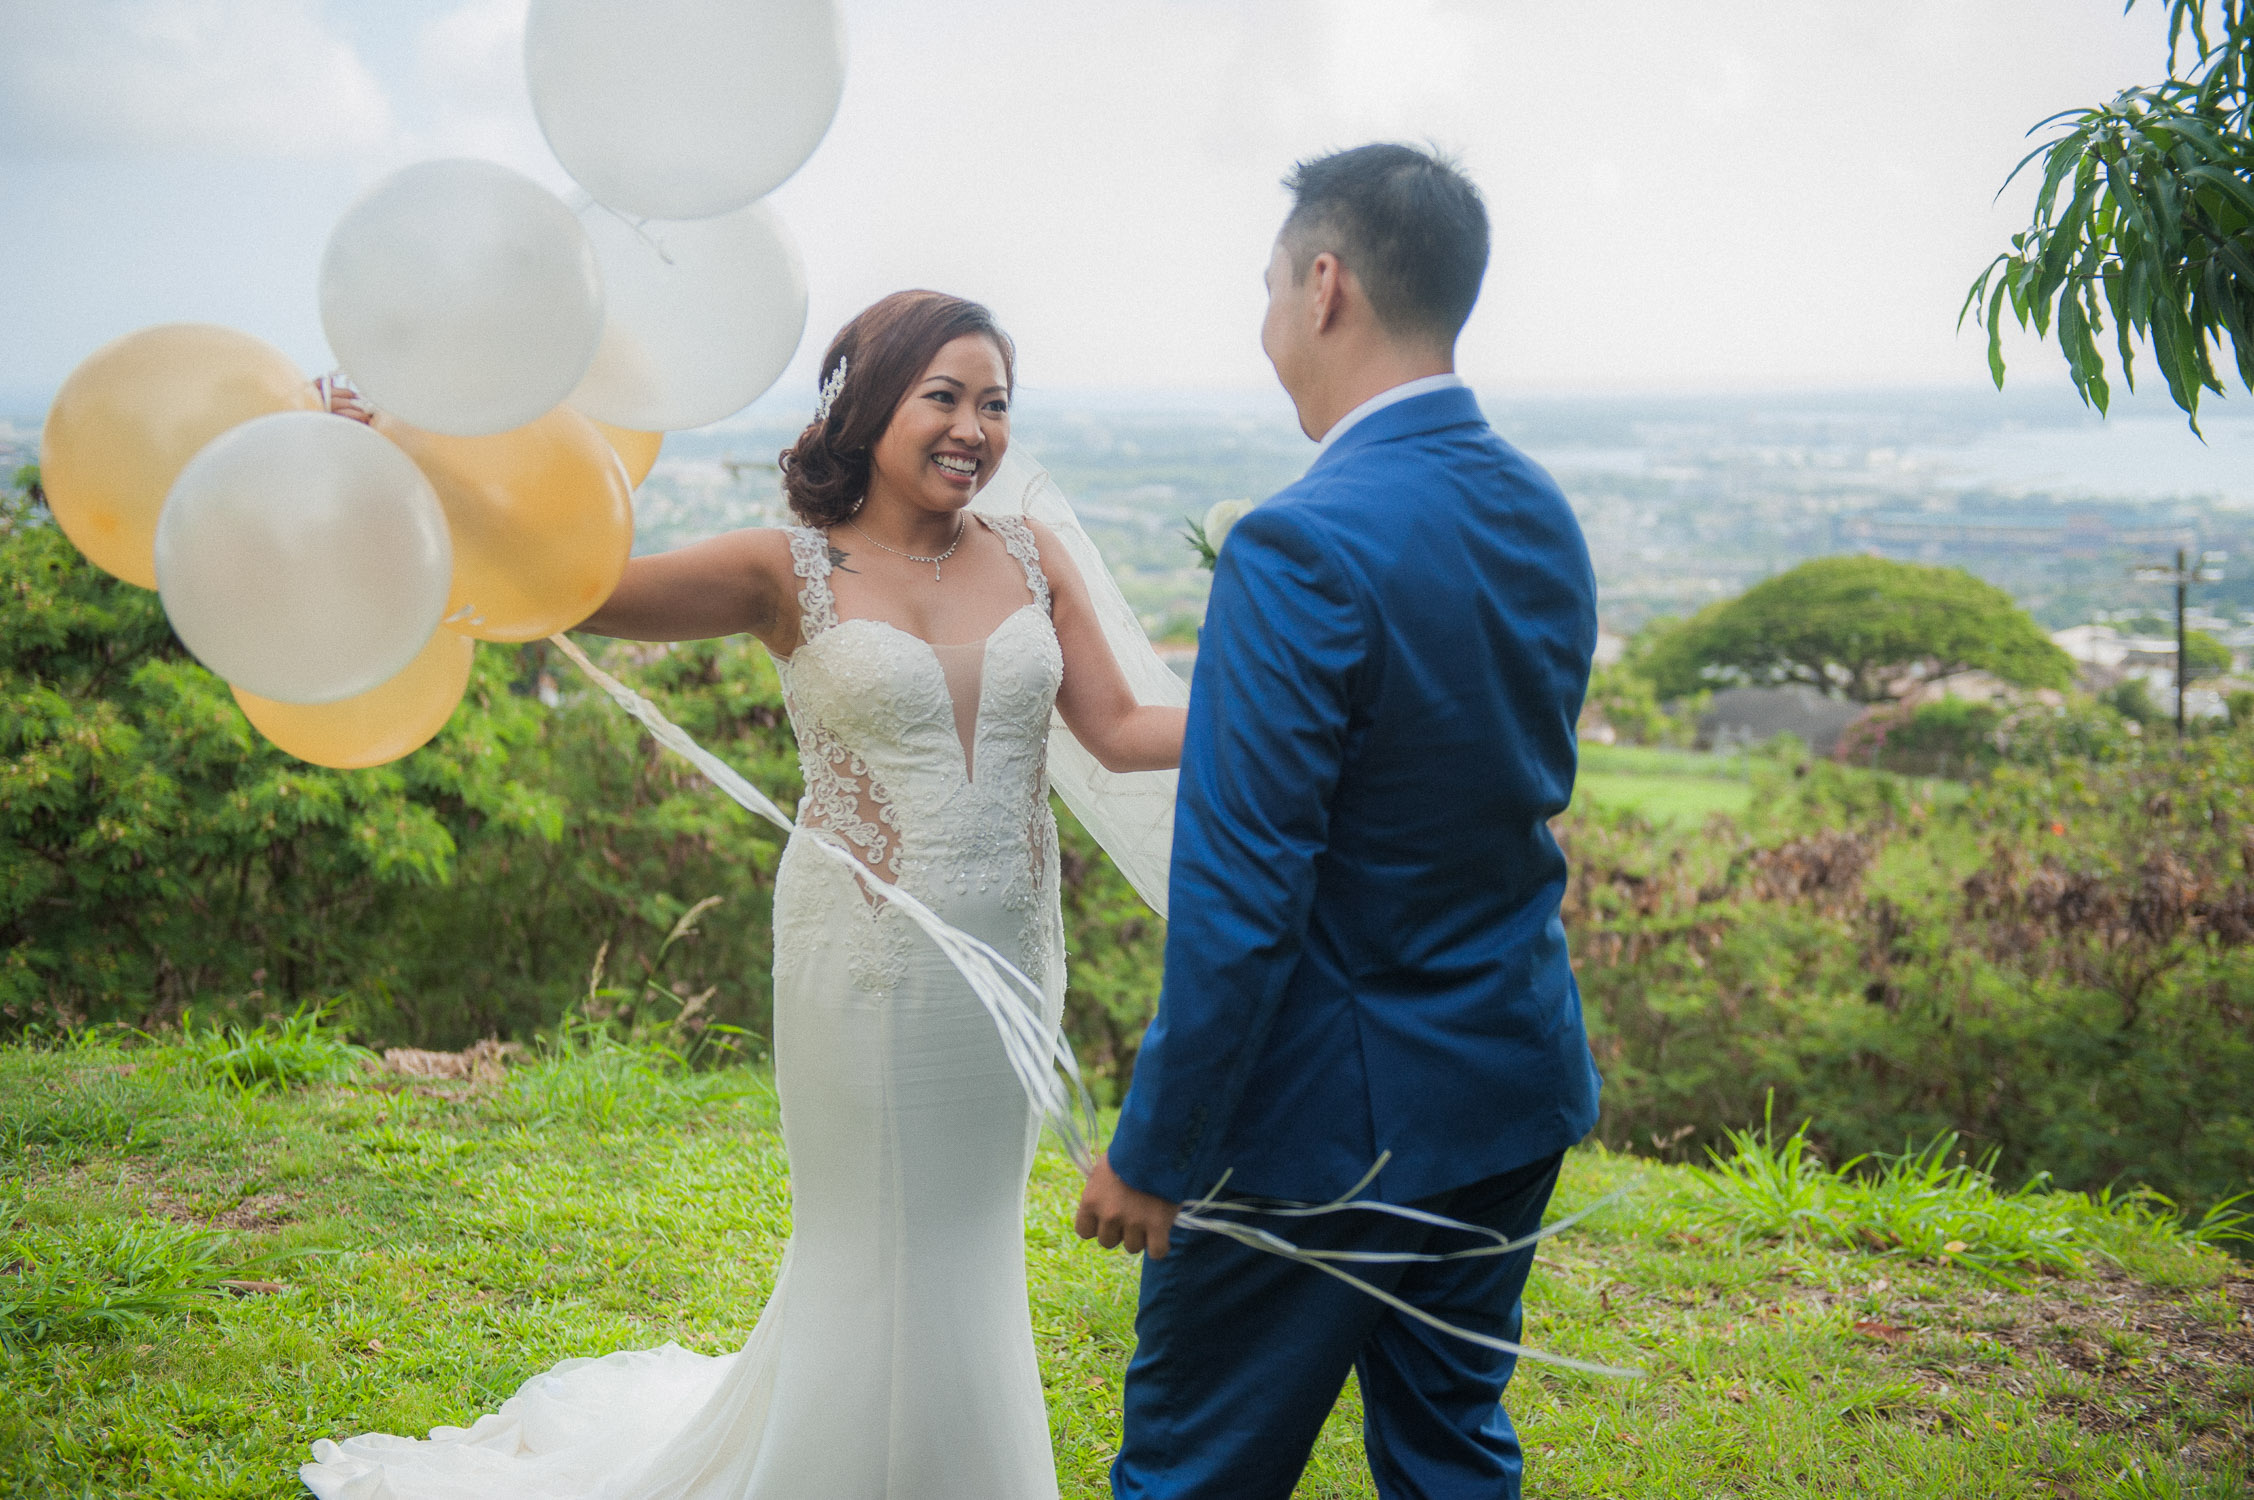 Groom seeing bride for first time with white and gold balloons